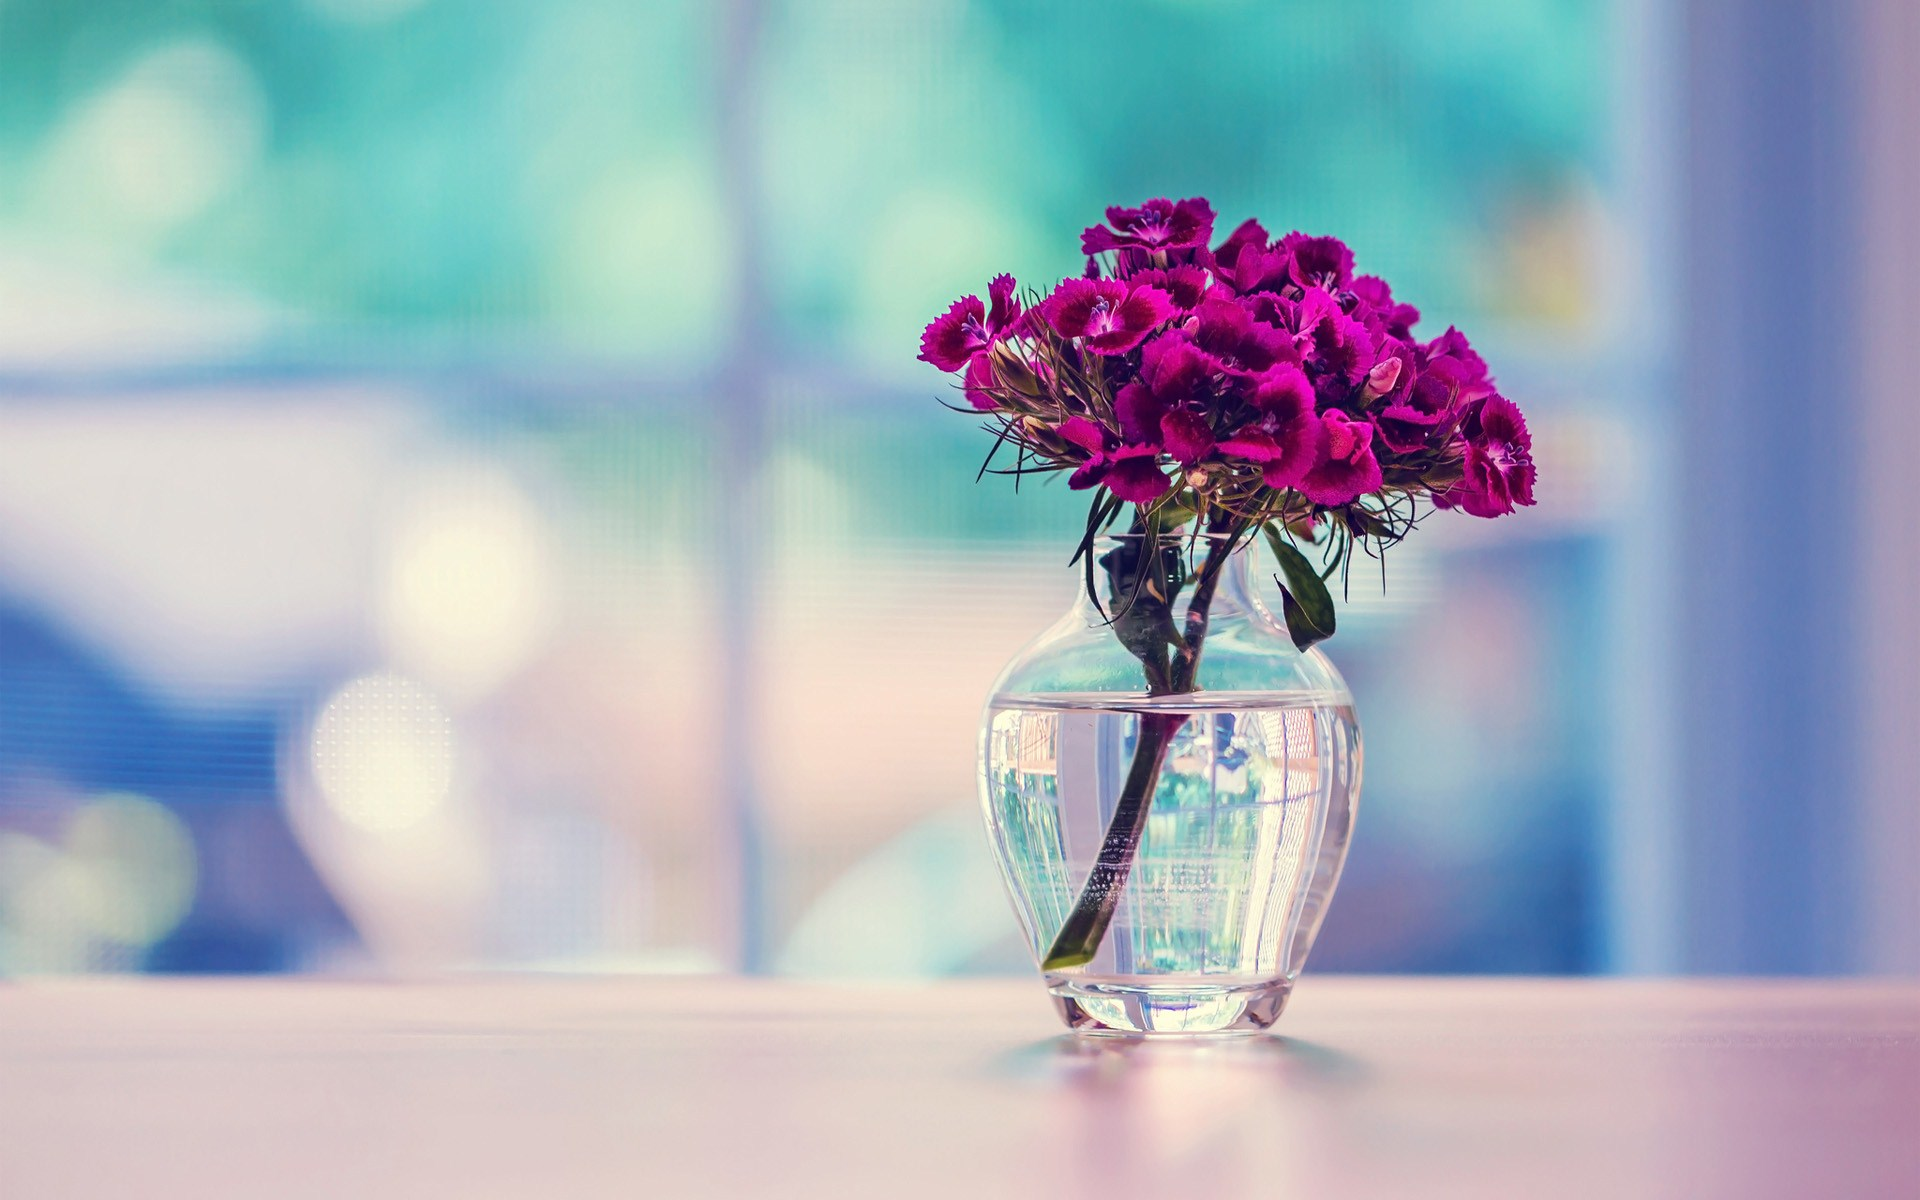 Lovely Table Flowers Wallpaper